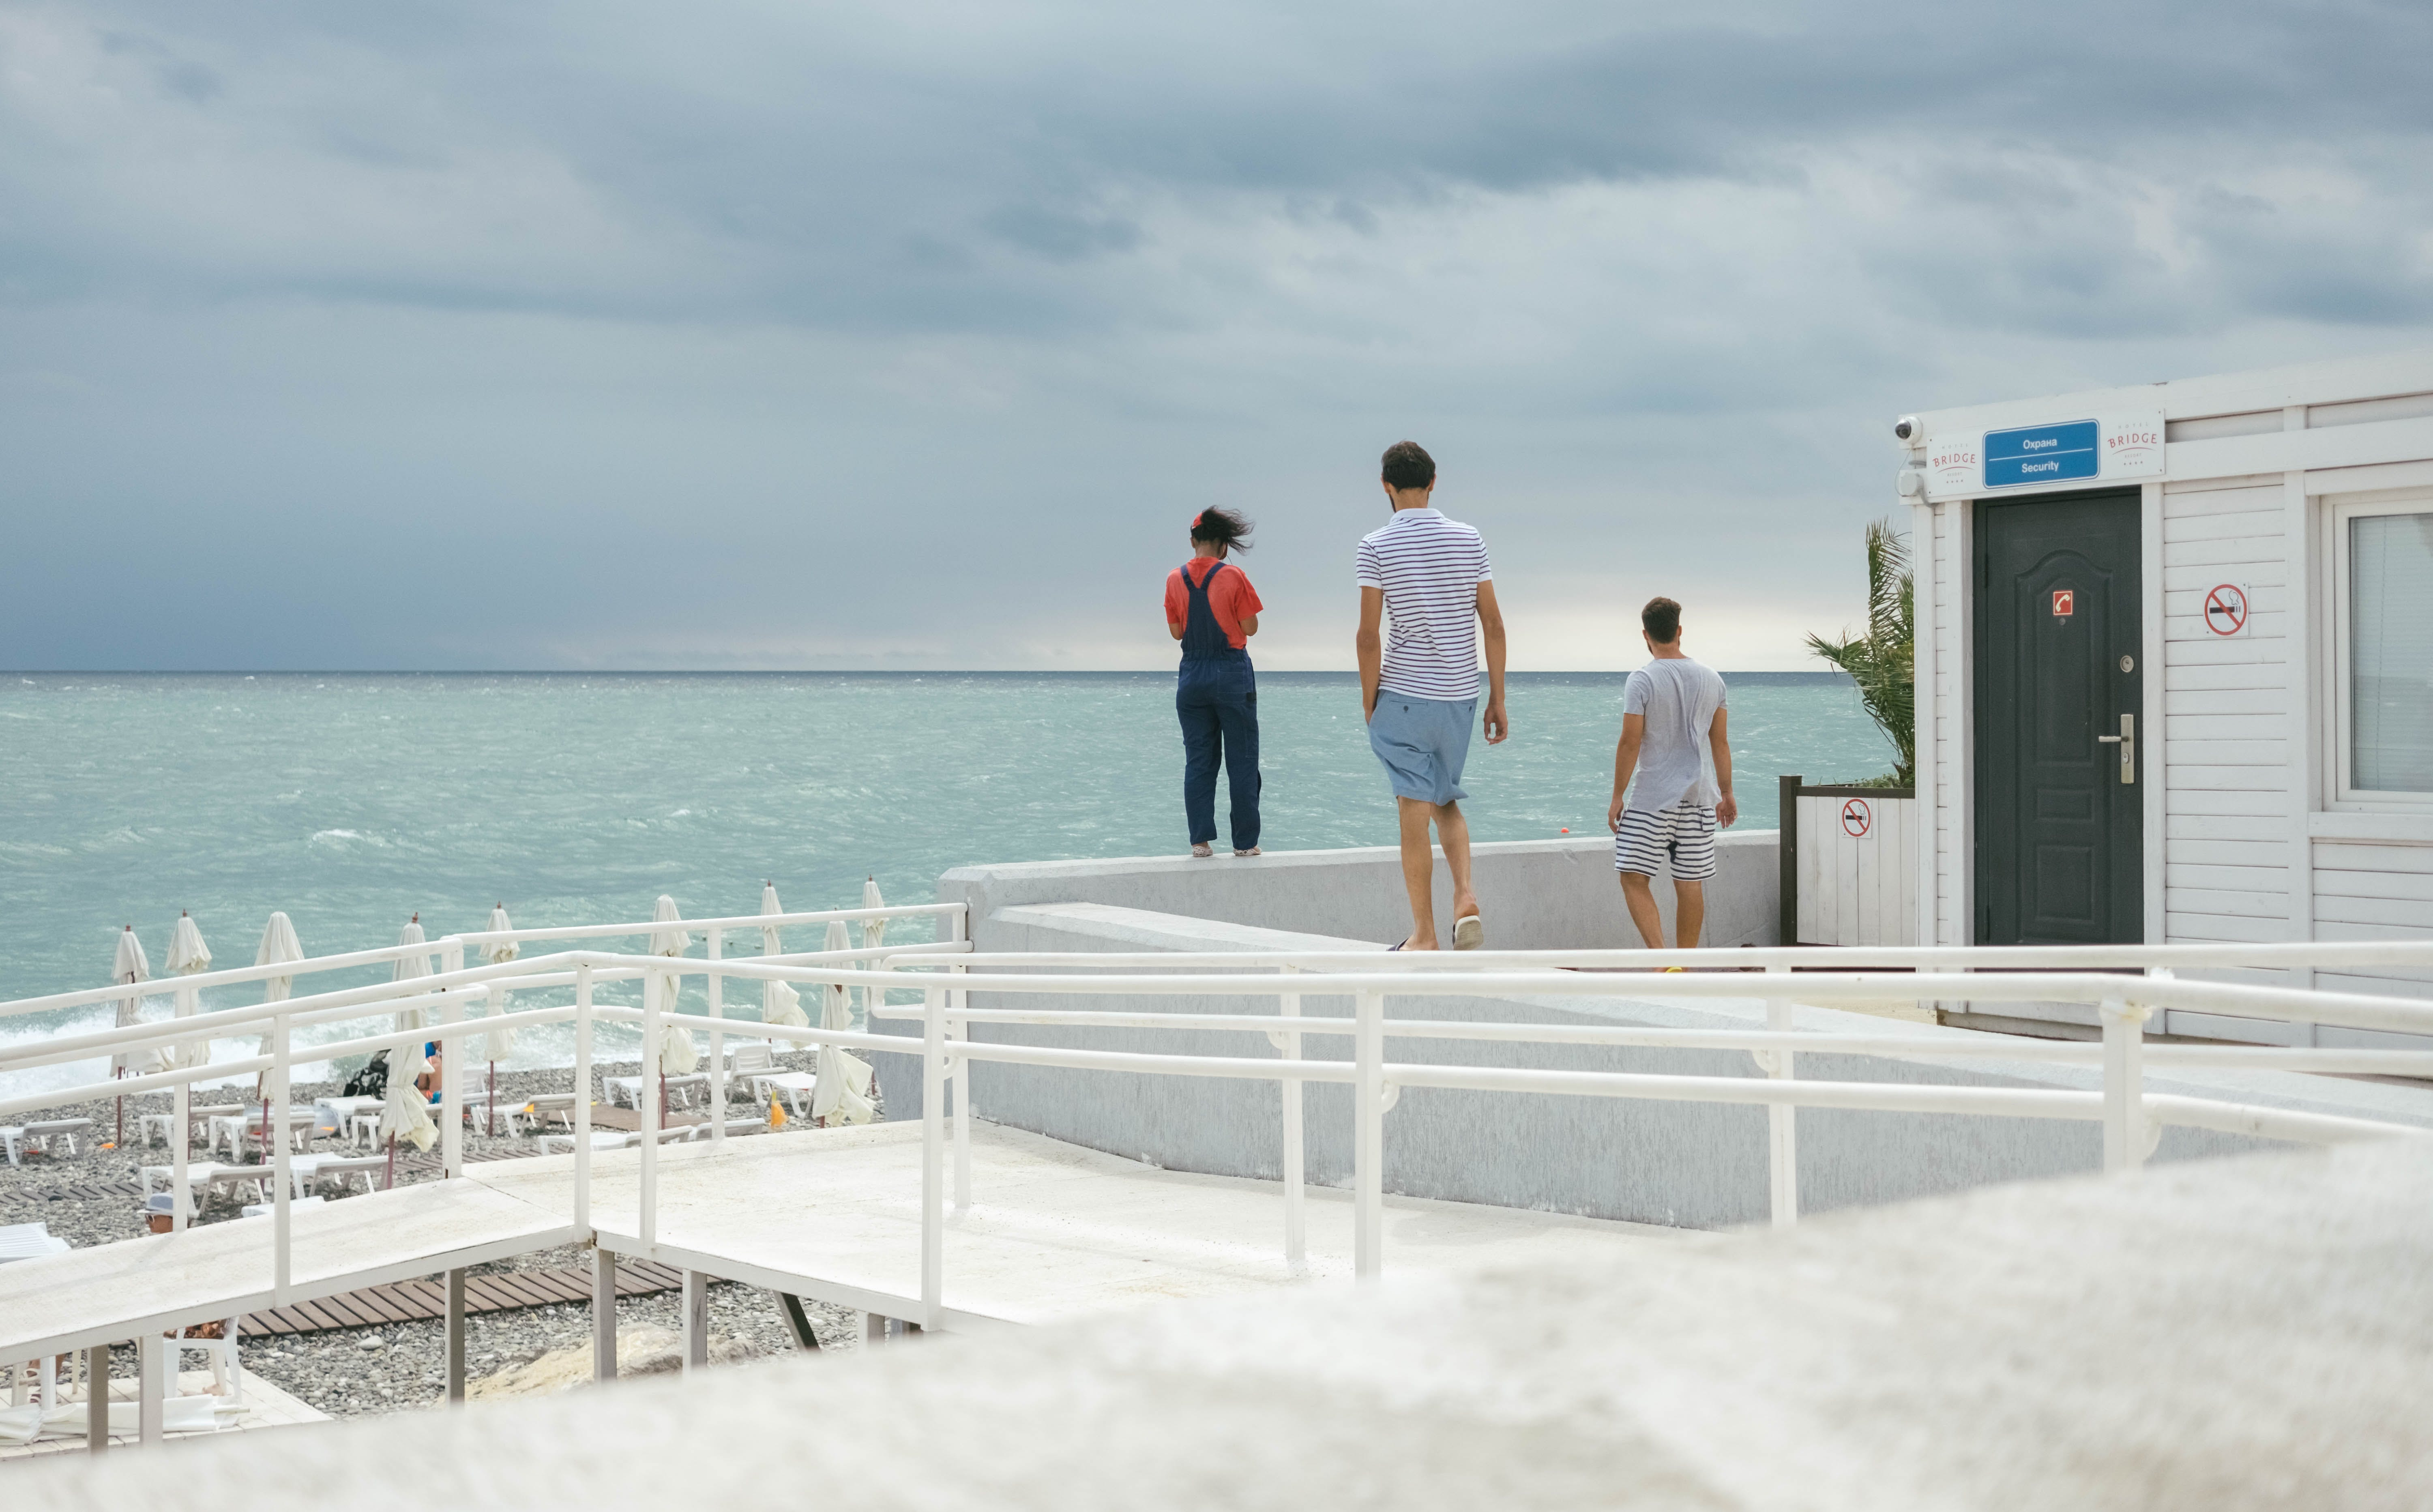 Three People Standing on White Surface Near Body of Water